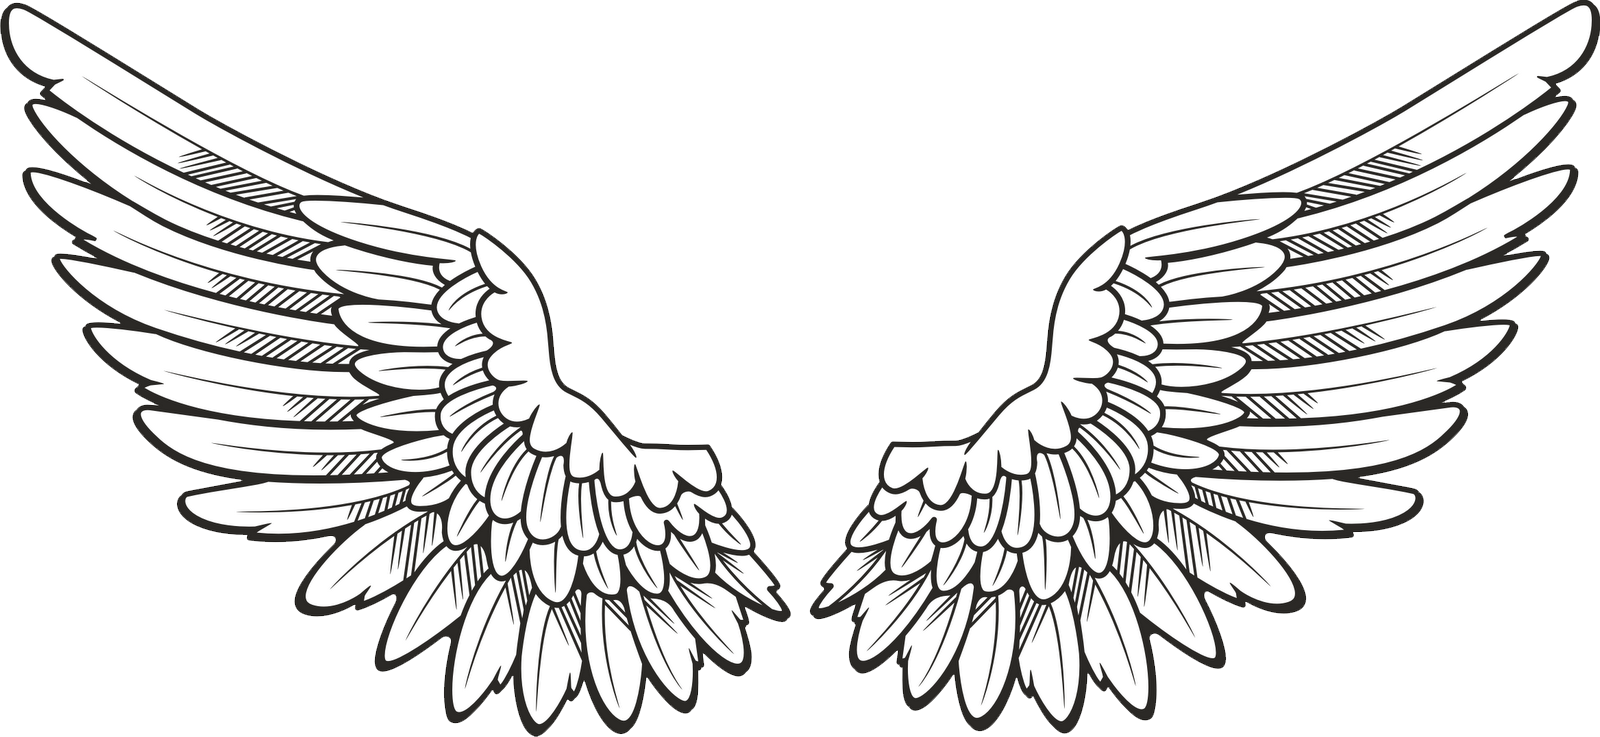 Download White Wings Png Image For Free Tato Leher Tato Pria